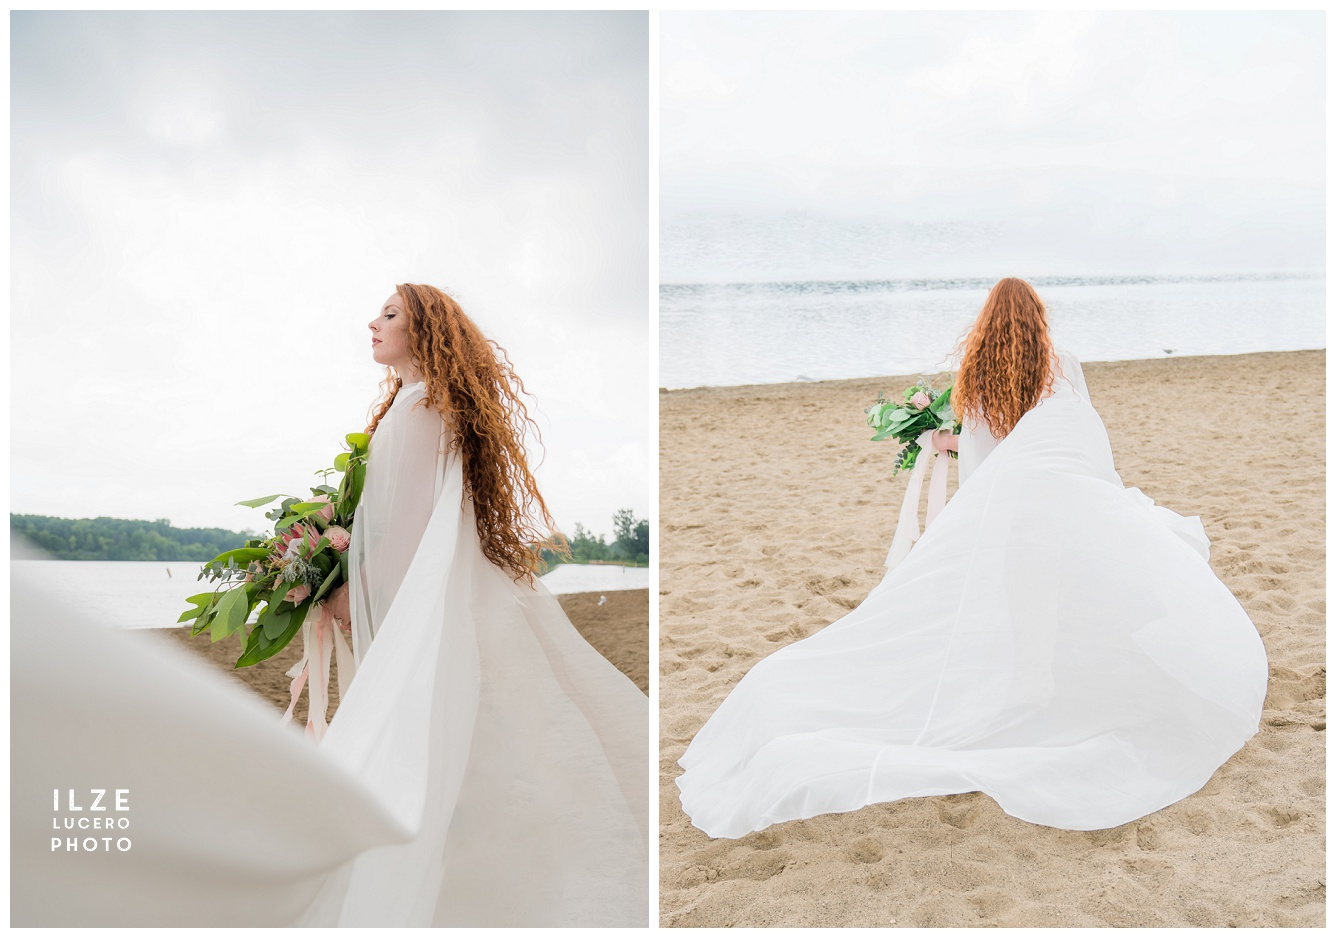 Bridal Cape Photo Shoot